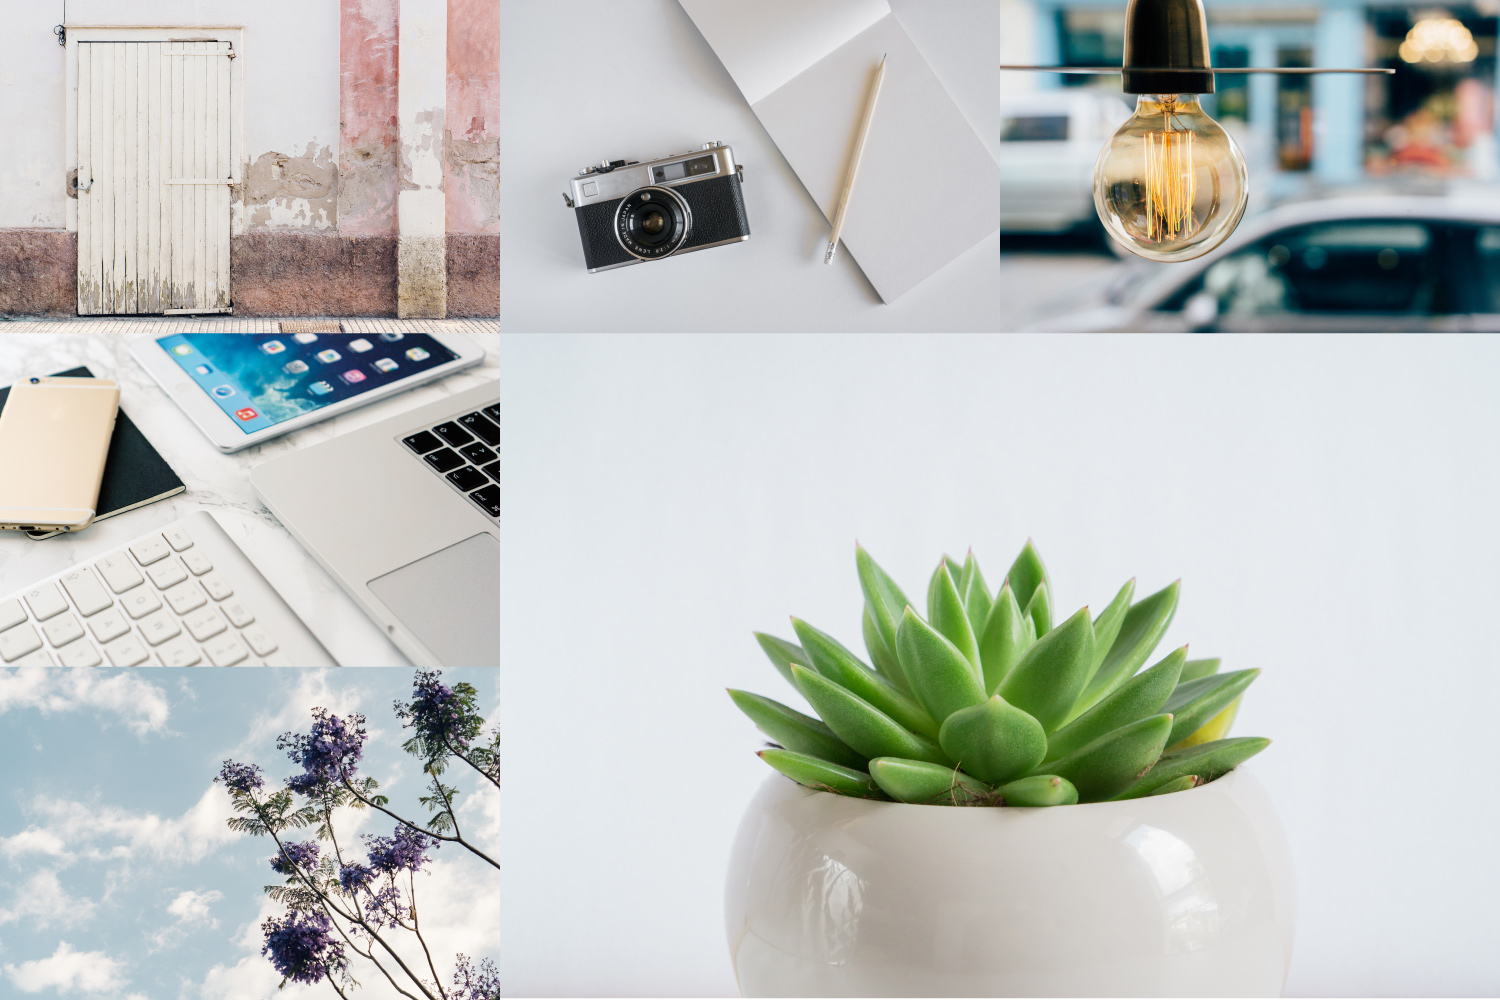 20 Stock Photos Creative Pack vol.1 example image 2